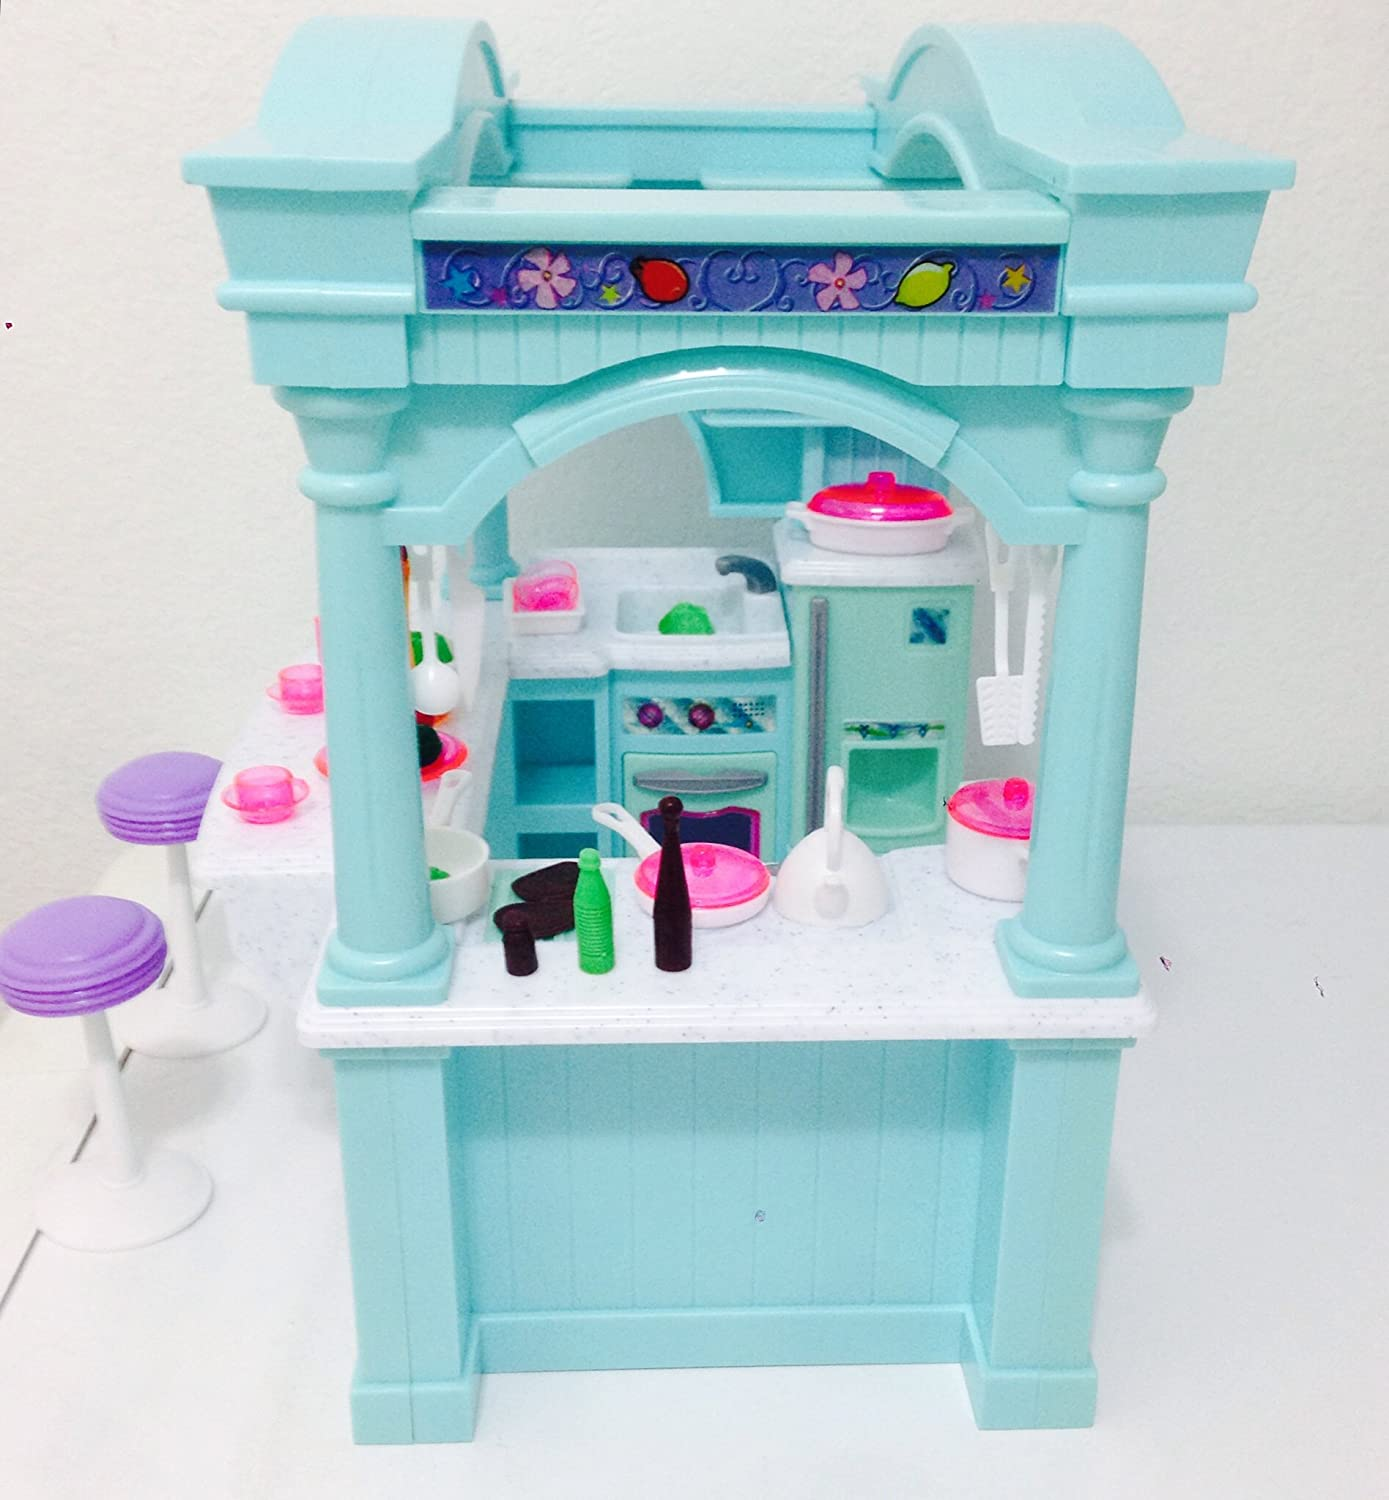 Dollhouse doll furniture barbie size room playset toy for Doll kitchen set